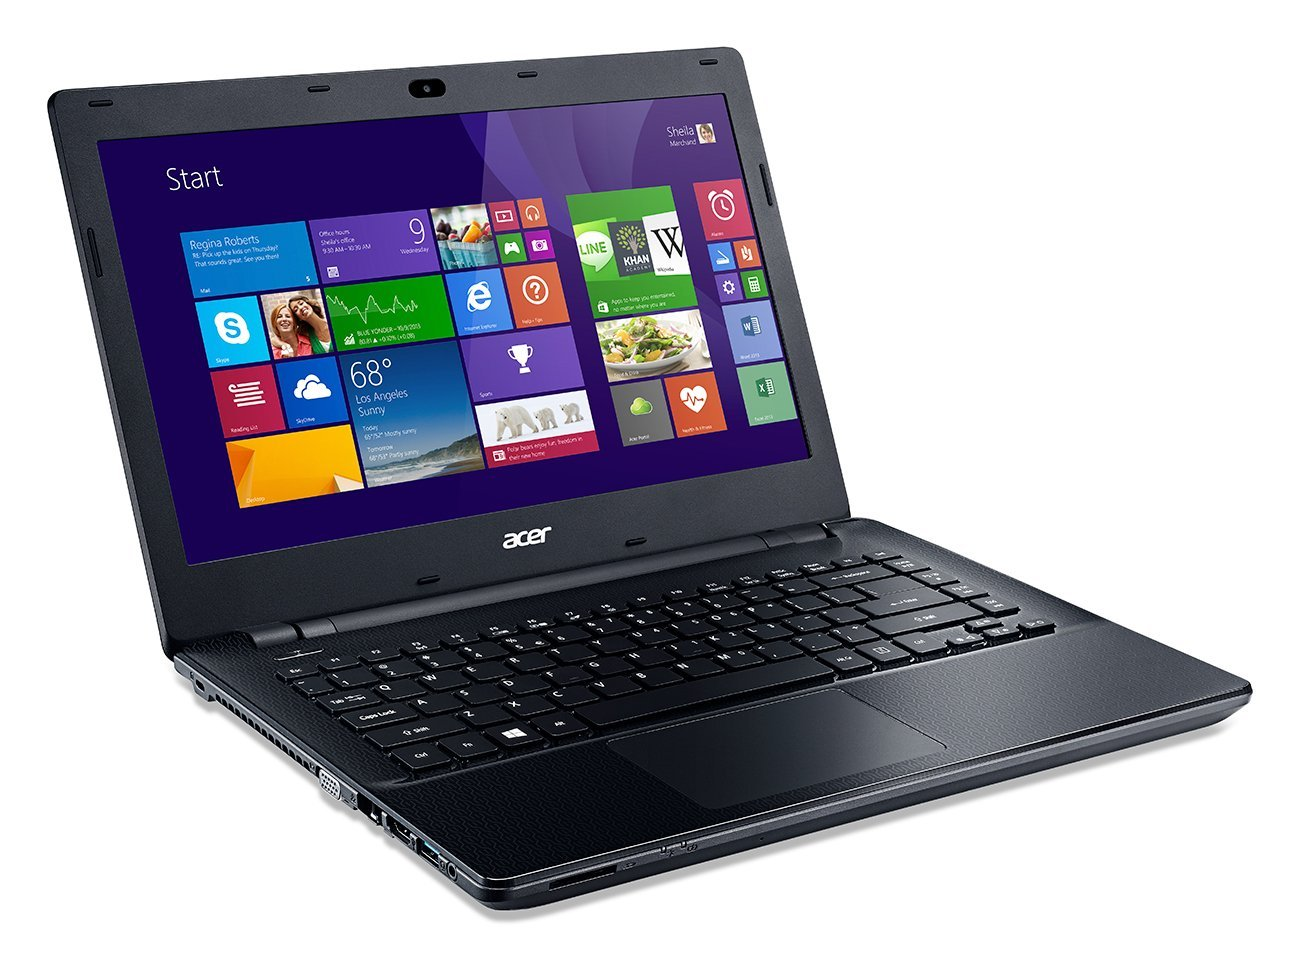 Acer Aspire E5-411-P32N Review